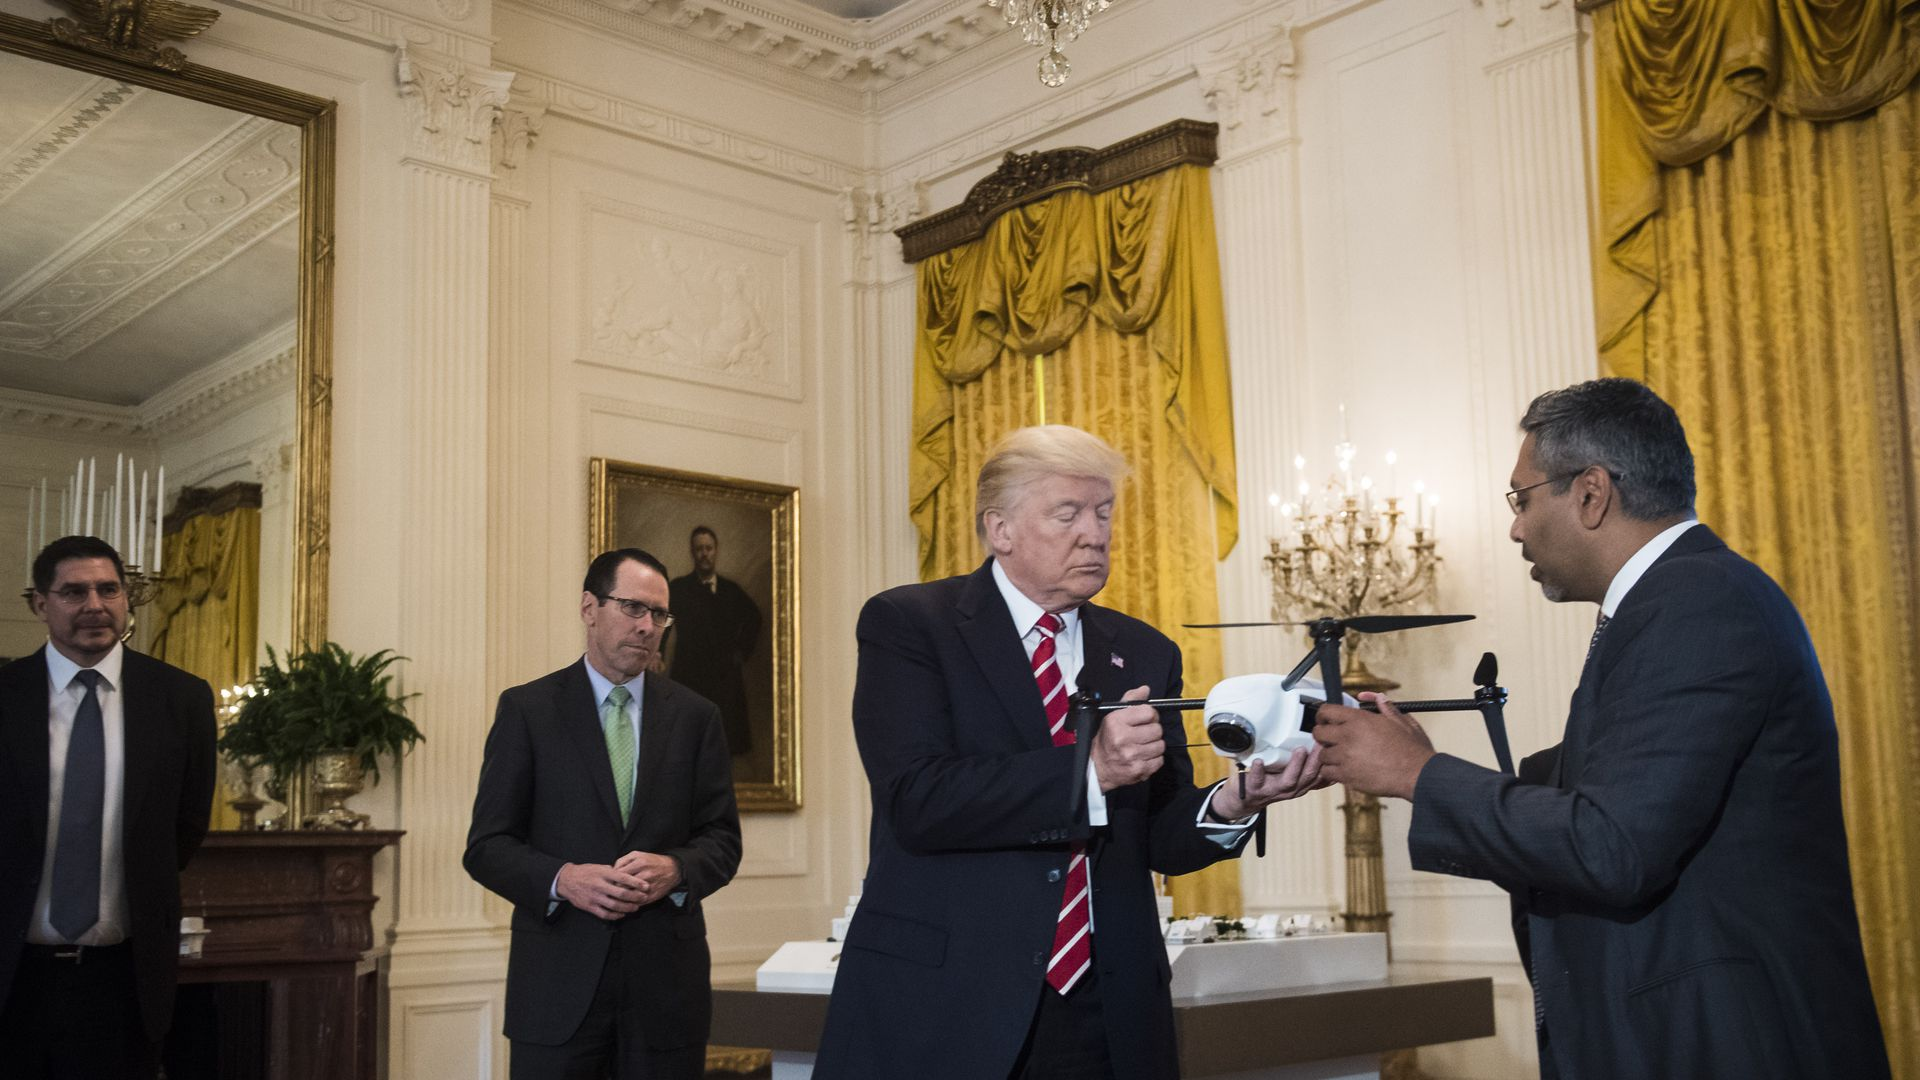 The president examines a drone